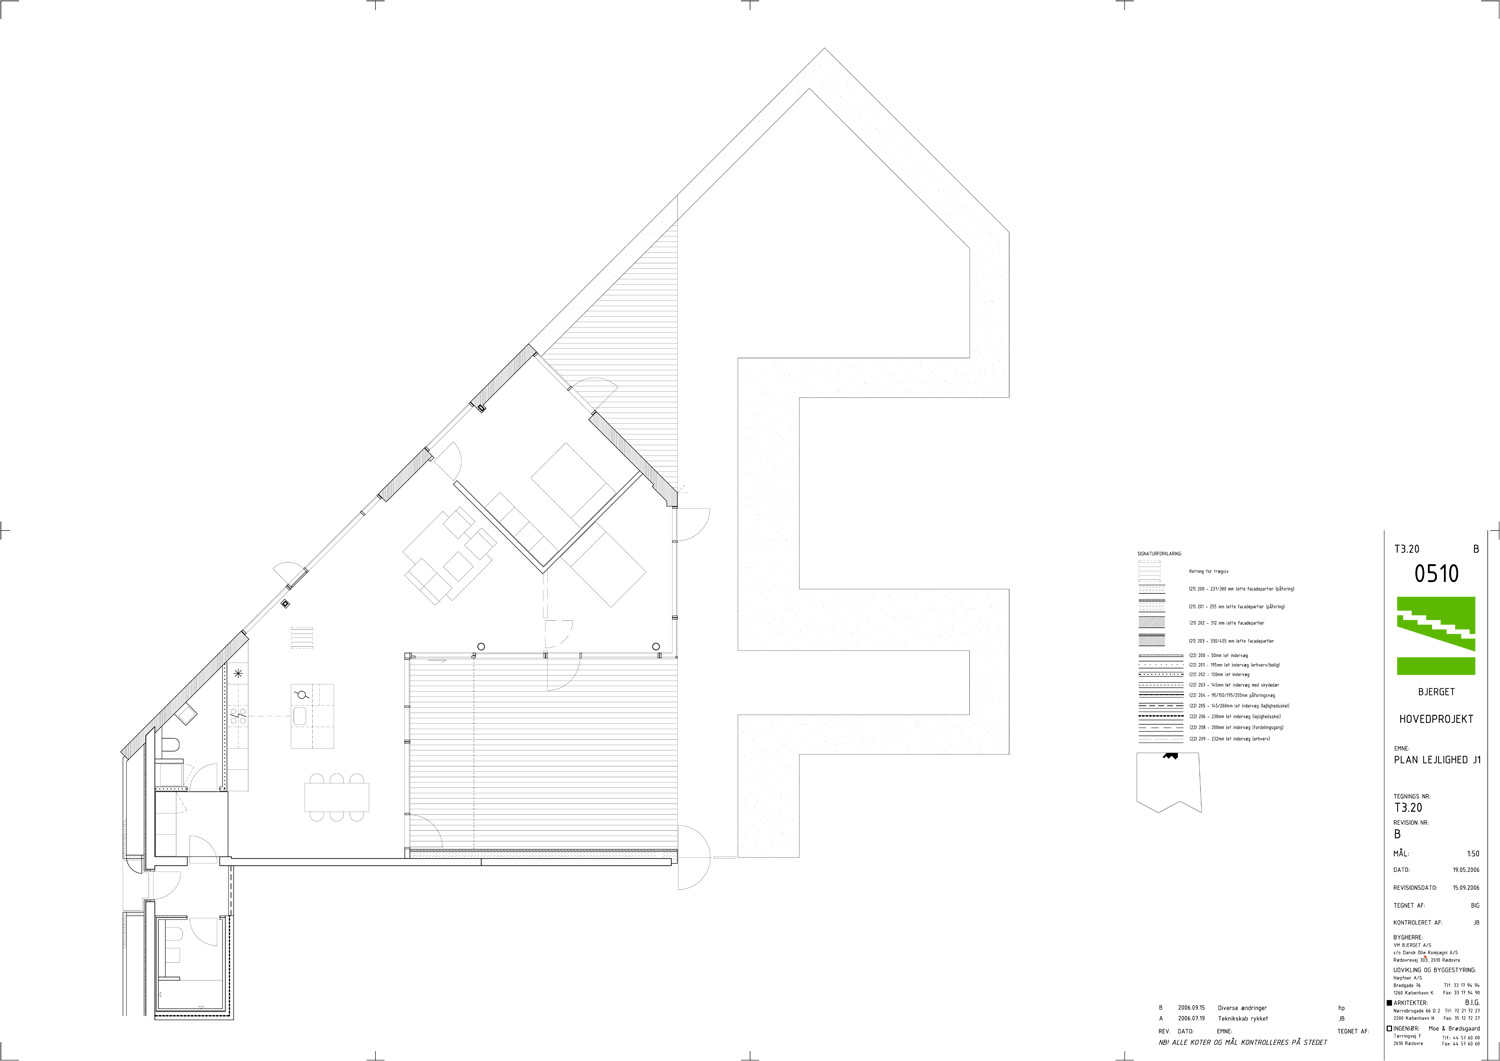 377739487466858197 furthermore Floor Plans in addition Feng Shui Bedroom Mirror Placement in addition 027g 0003 in addition White Brick Wall Seamless Texture Image 6292889. on apartment floor plans